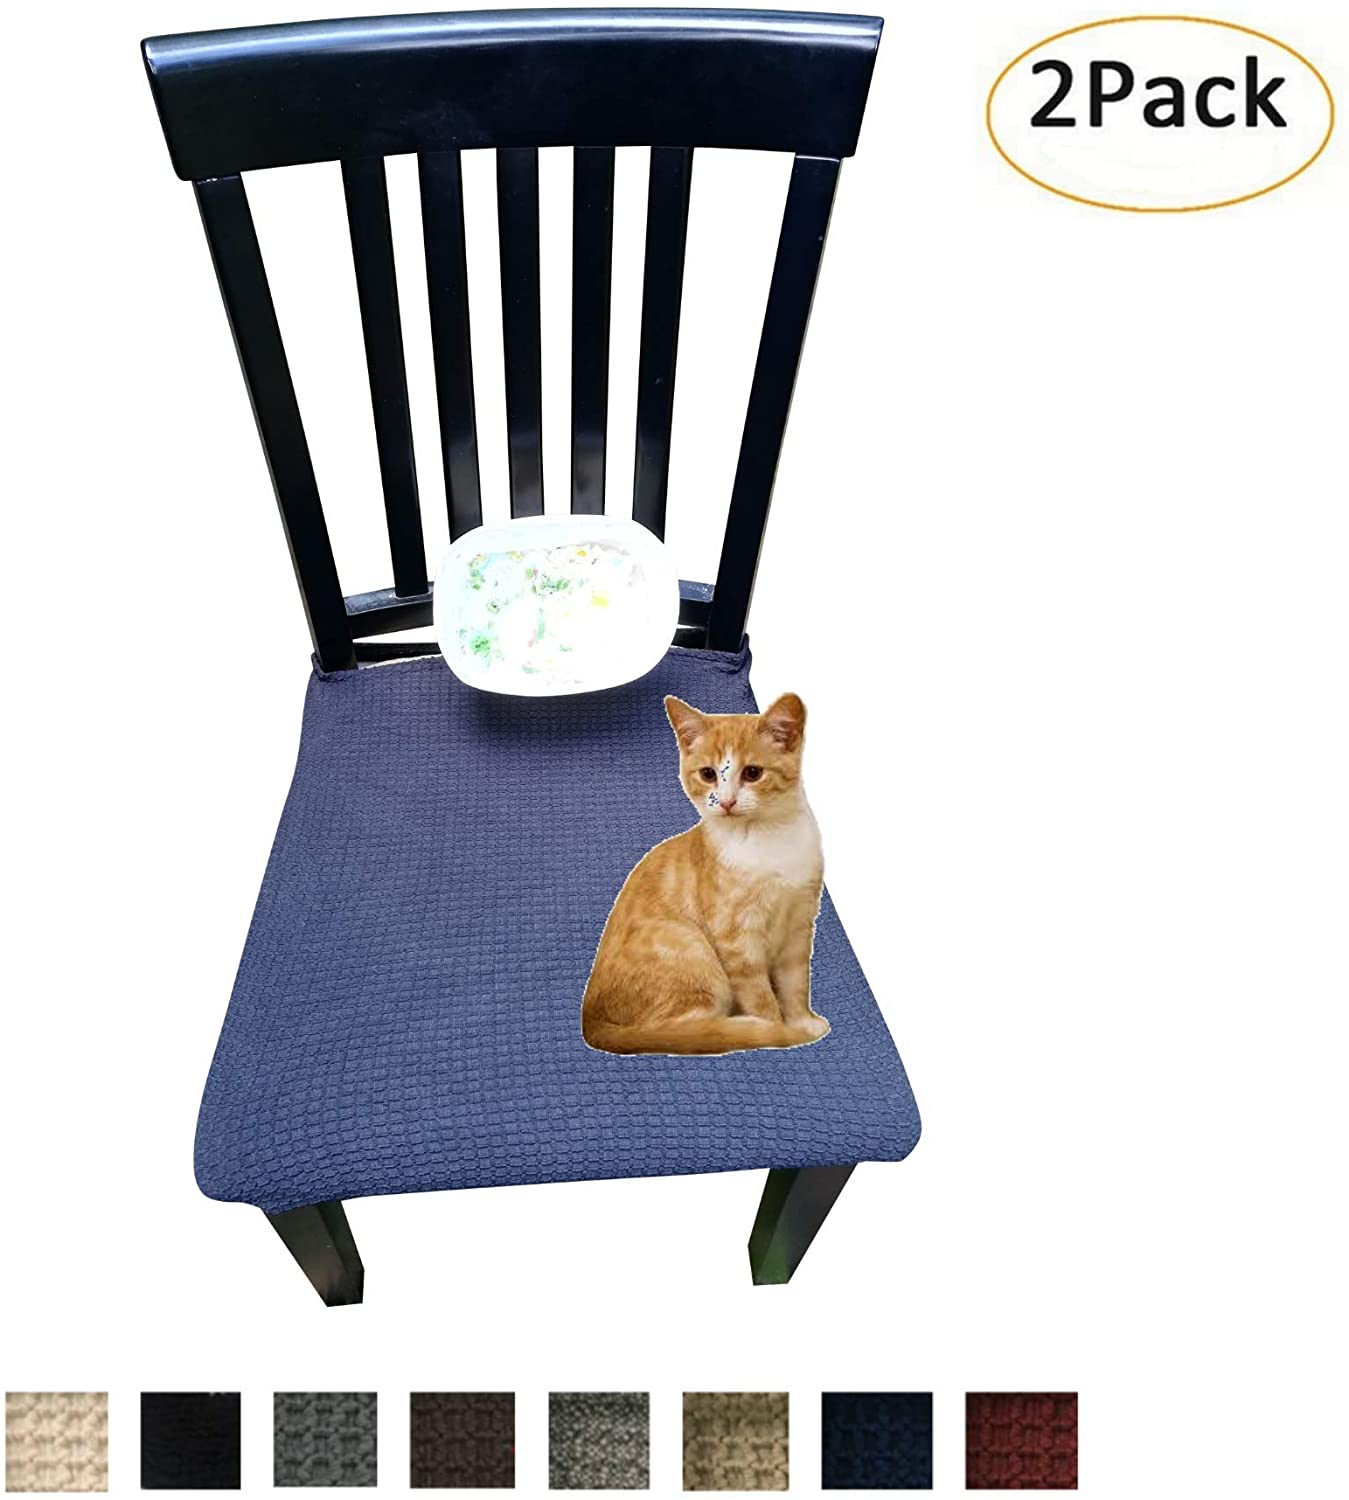 Waterproof Dining Chair Cover Protector - Pack 2 - Perfect For Pets, Kids, Elderly, Restaurants, Party - Machine Washable, Snugly Fit, Removable, Many Color Choices, Clean the Mess Easily (Black)